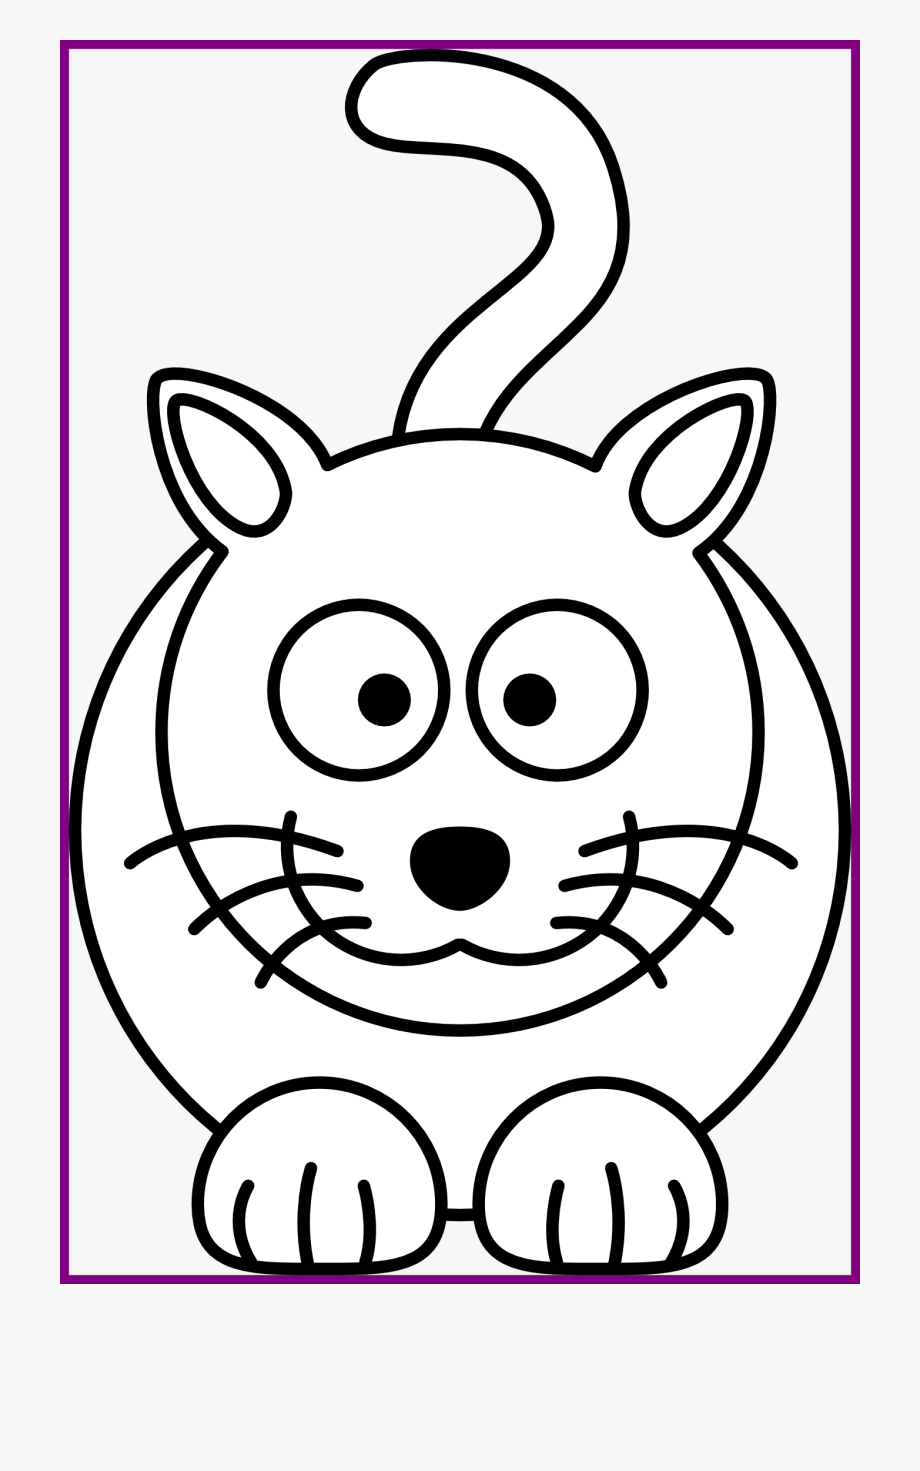 Kids face eyes and nose black and white clipart svg library Best Cat Face Clipart Black And White Pic Of Kitten - Easy ... svg library